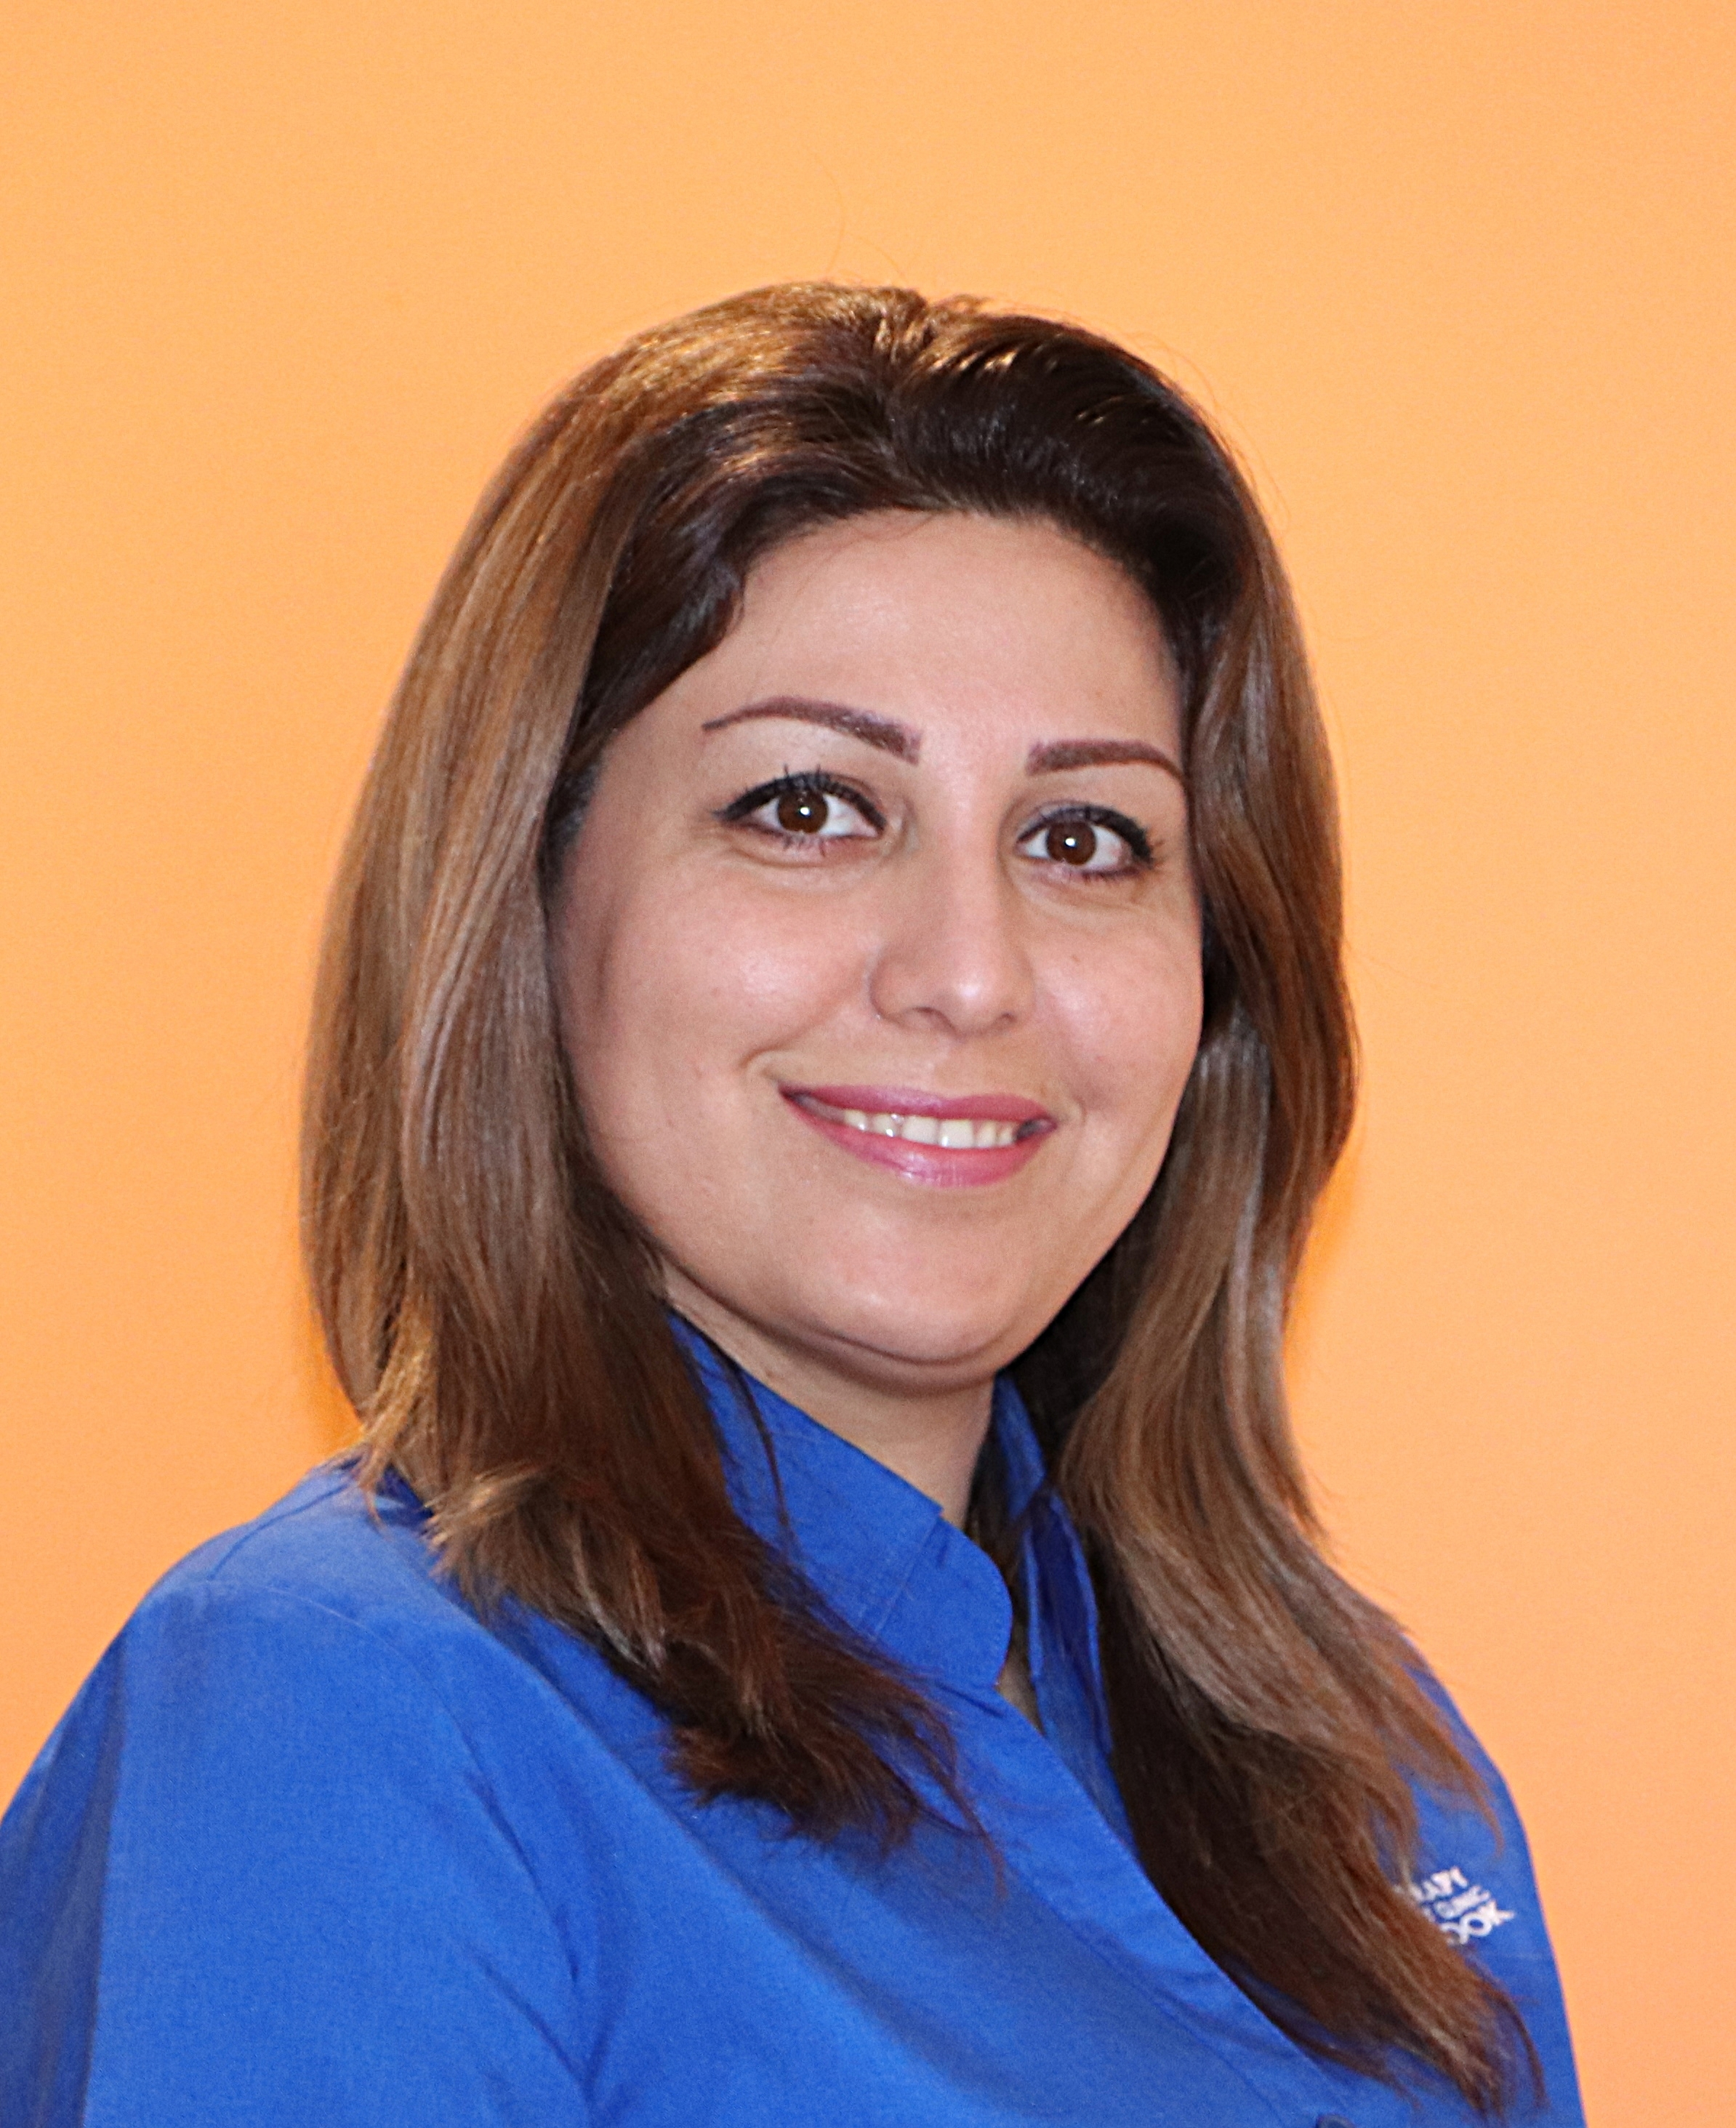 Hello! My name is Maya. - Maya has been a qualified physiotherapist since 2000, initially completing her qualification in Tehran and then re-qualifying in Australia in 2006. As well as physiotherapy, Maya also has qualifications as a chiropractor and a natropath.She has a keen interest in pain management, mobility improvement and hands-on therapy with exercise focused management of sporting injuries.You can book an appointment with Maya on:Monday 8am - 7pmWednesday 2pm - 7pmThursday 8am - 7pmSaturday 8am - 12pm